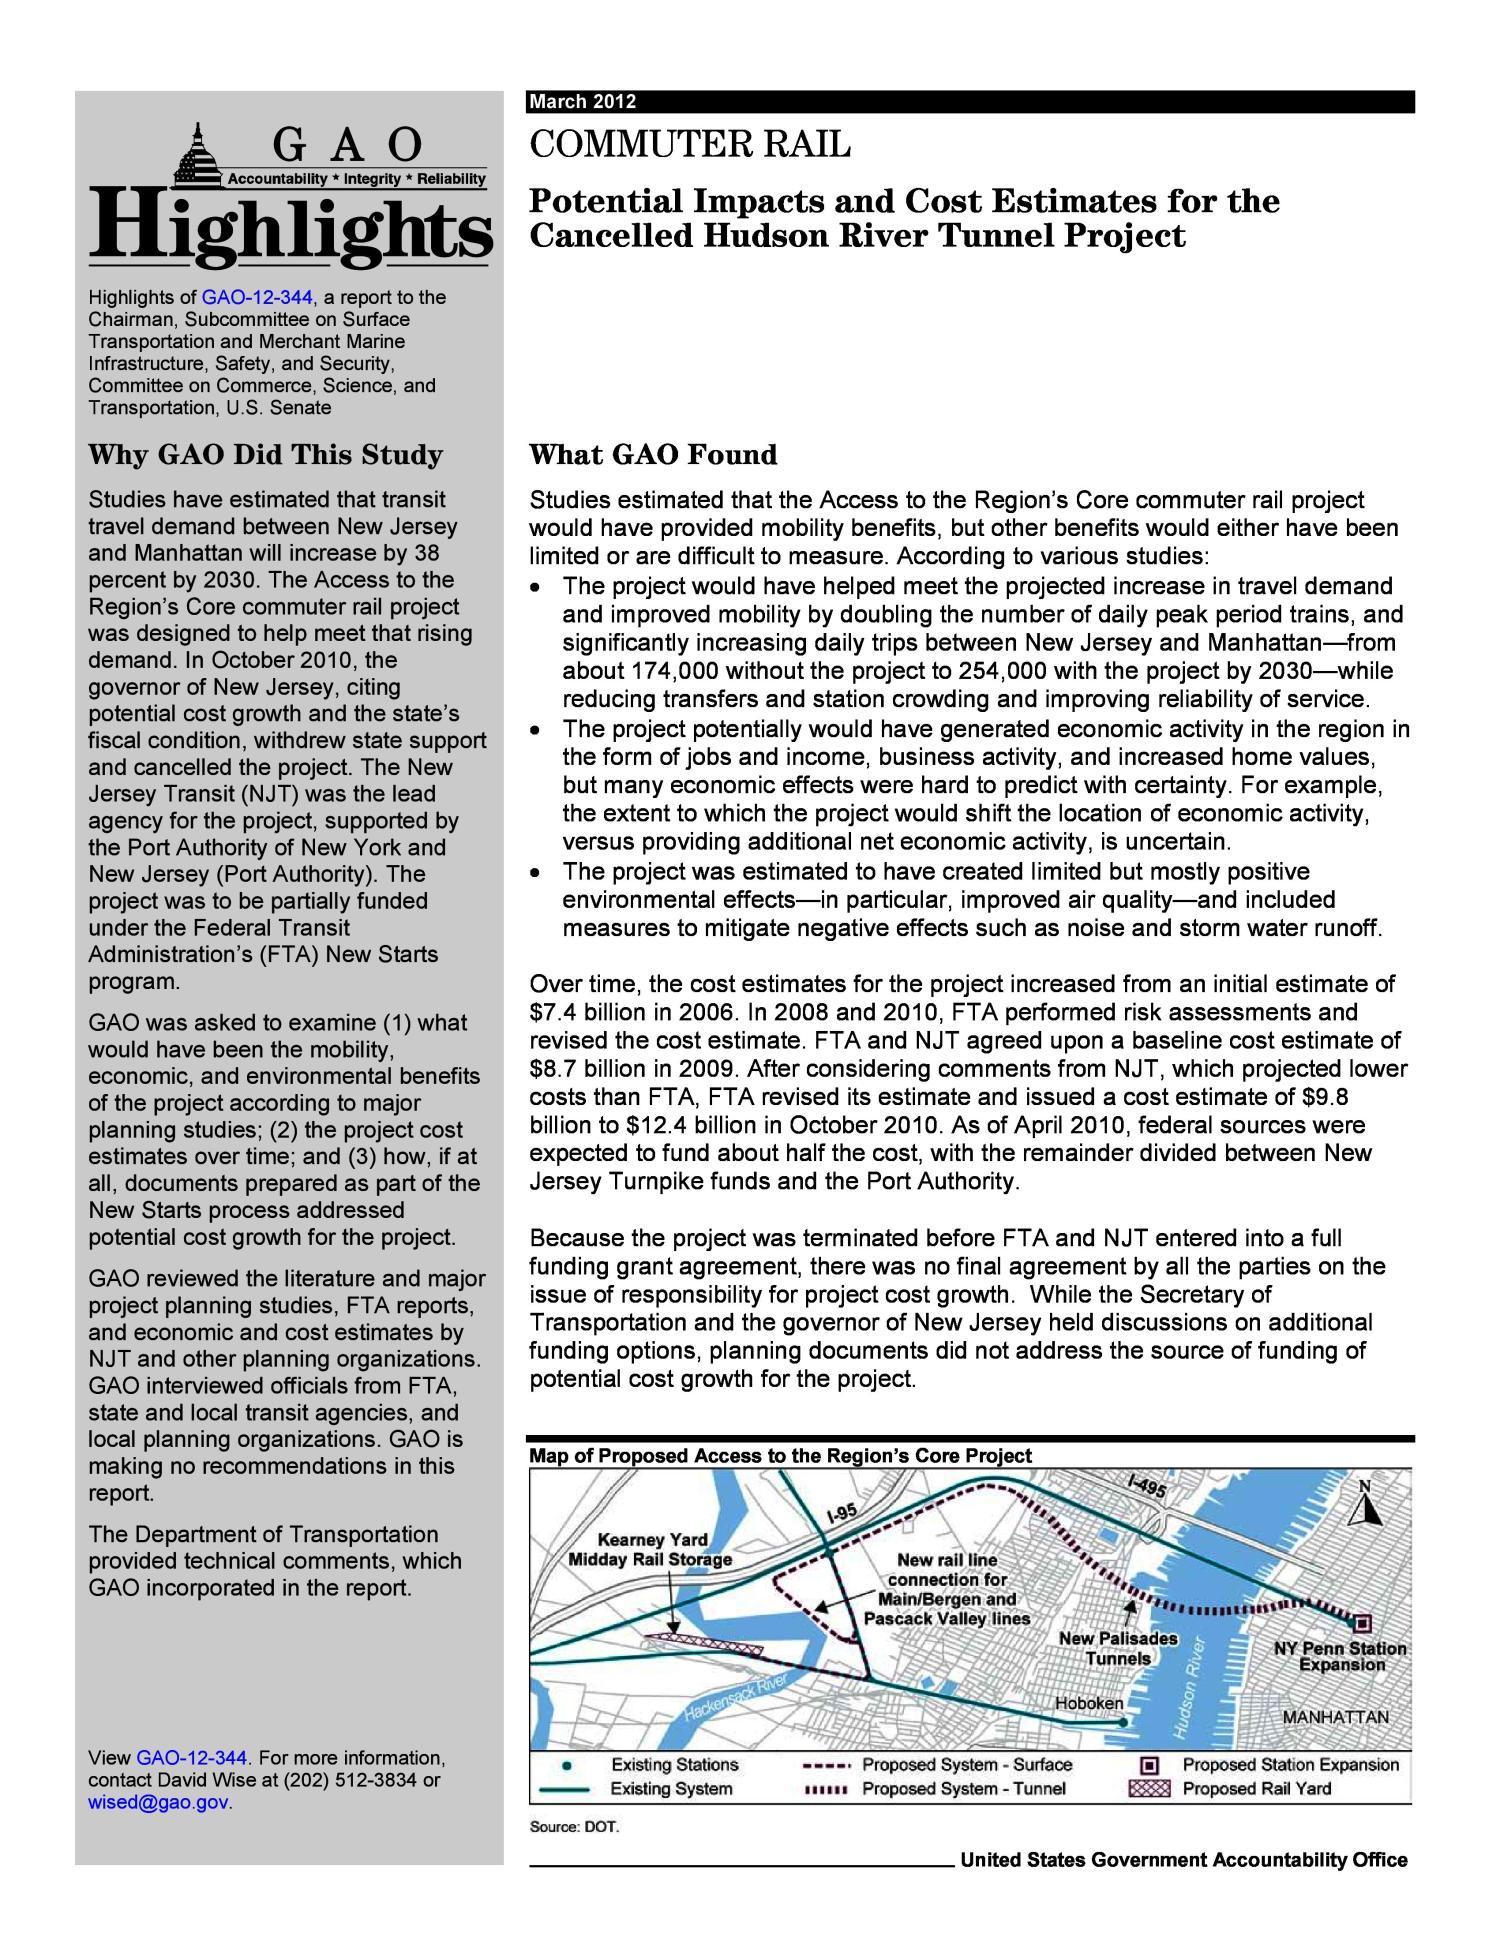 Commuter Rail: Potential Impacts and Cost Estimates for the Cancelled Hudson River Tunnel Project                                                                                                      [Sequence #]: 2 of 29